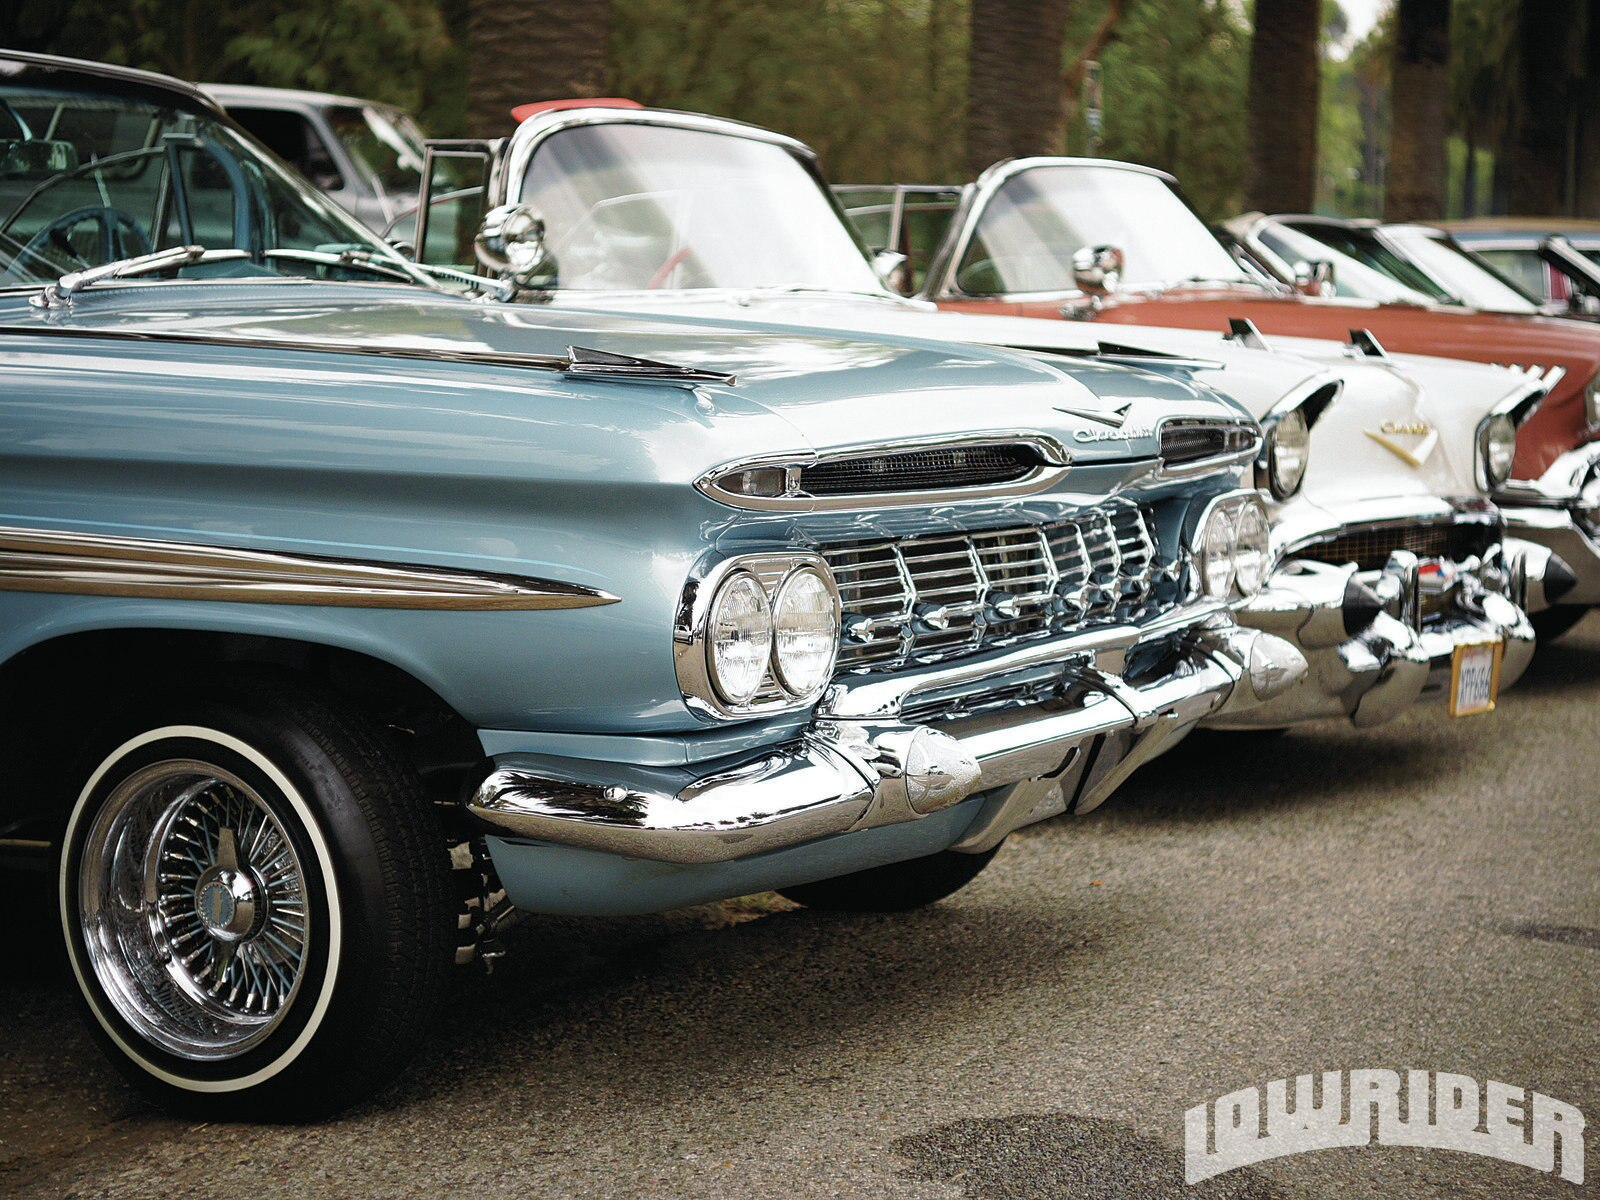 august-2013-editors-letter-chevrolets-lined-up1